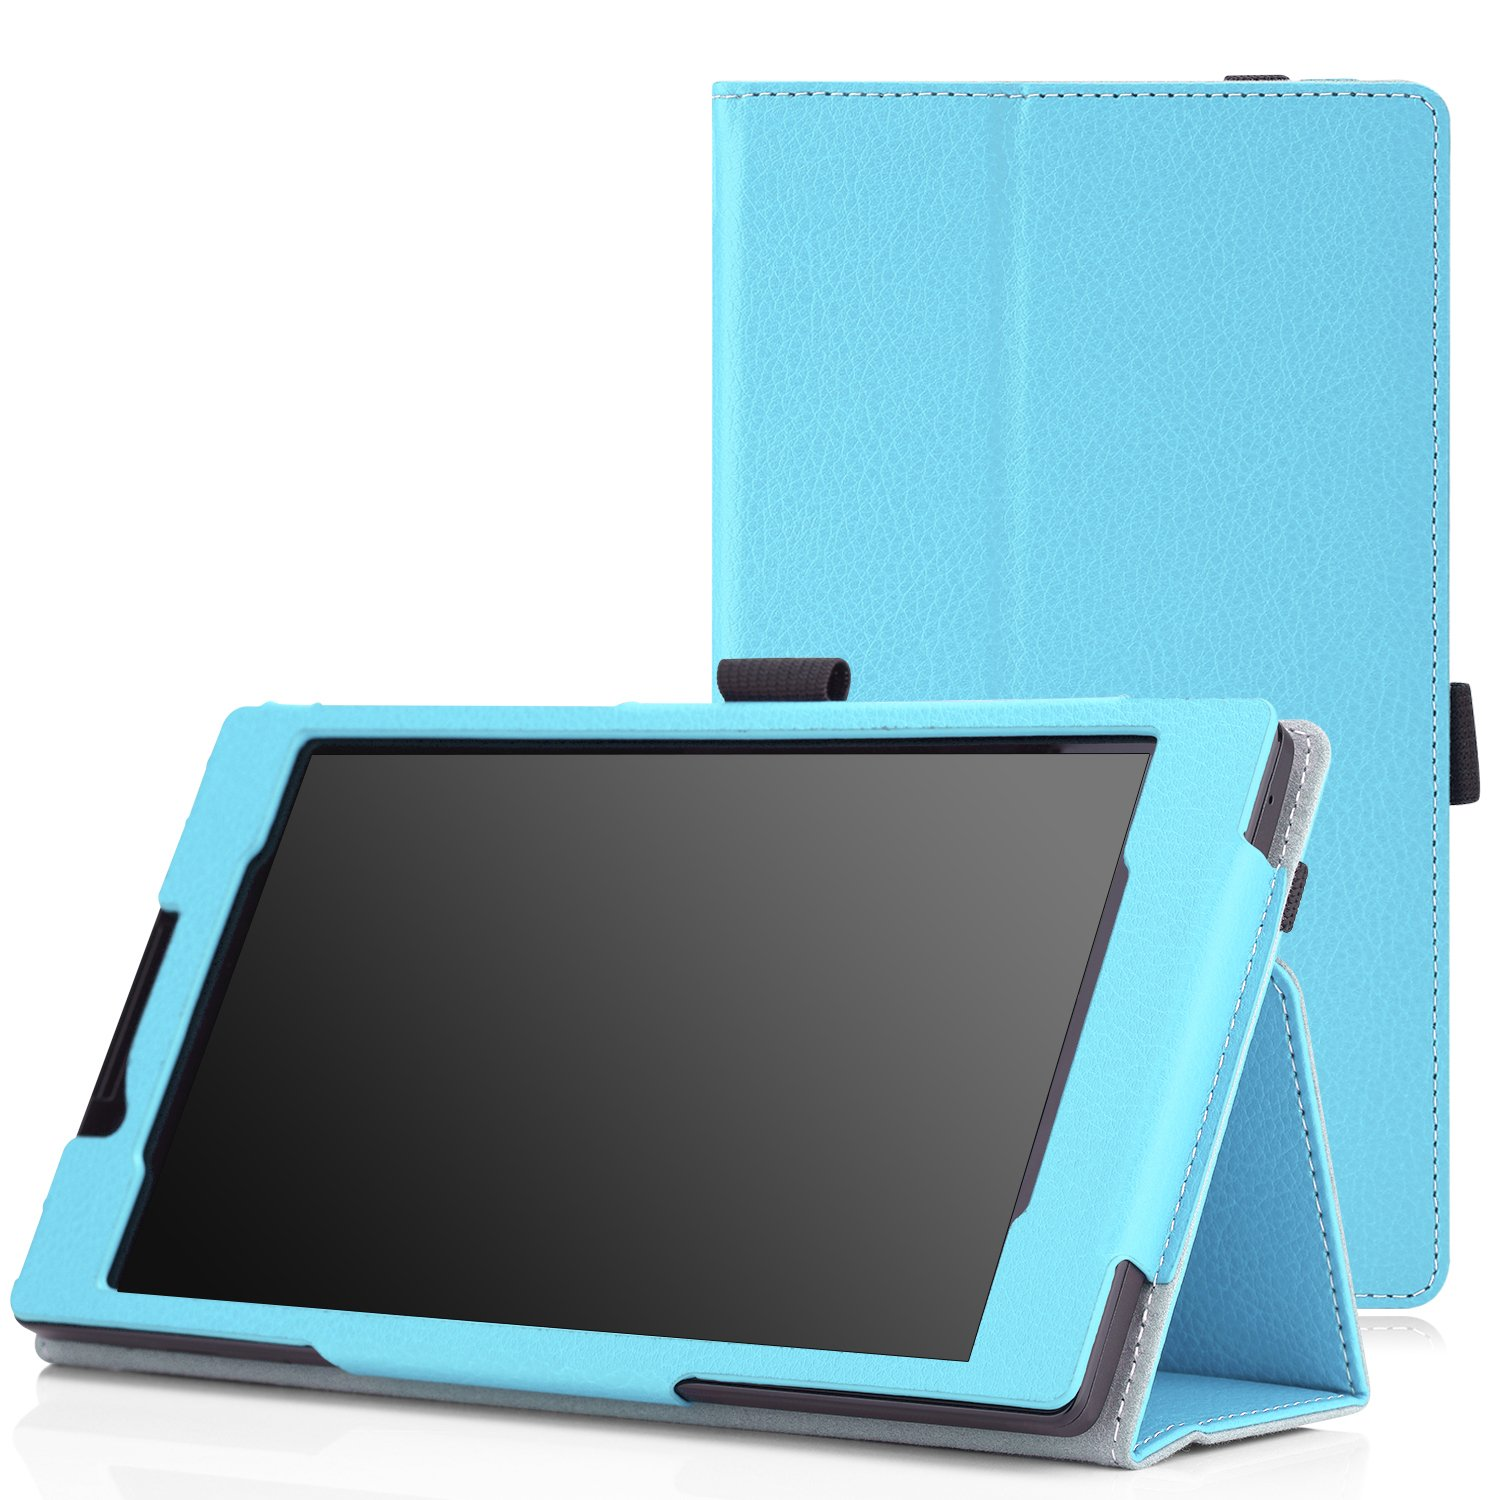 Moko Lenovo Tab 2 A7 30 Case Slim Folding Cover Idea A3500 Blue For A3300 7 Inch 2014 Gen Android 44 Tablet Light Computers